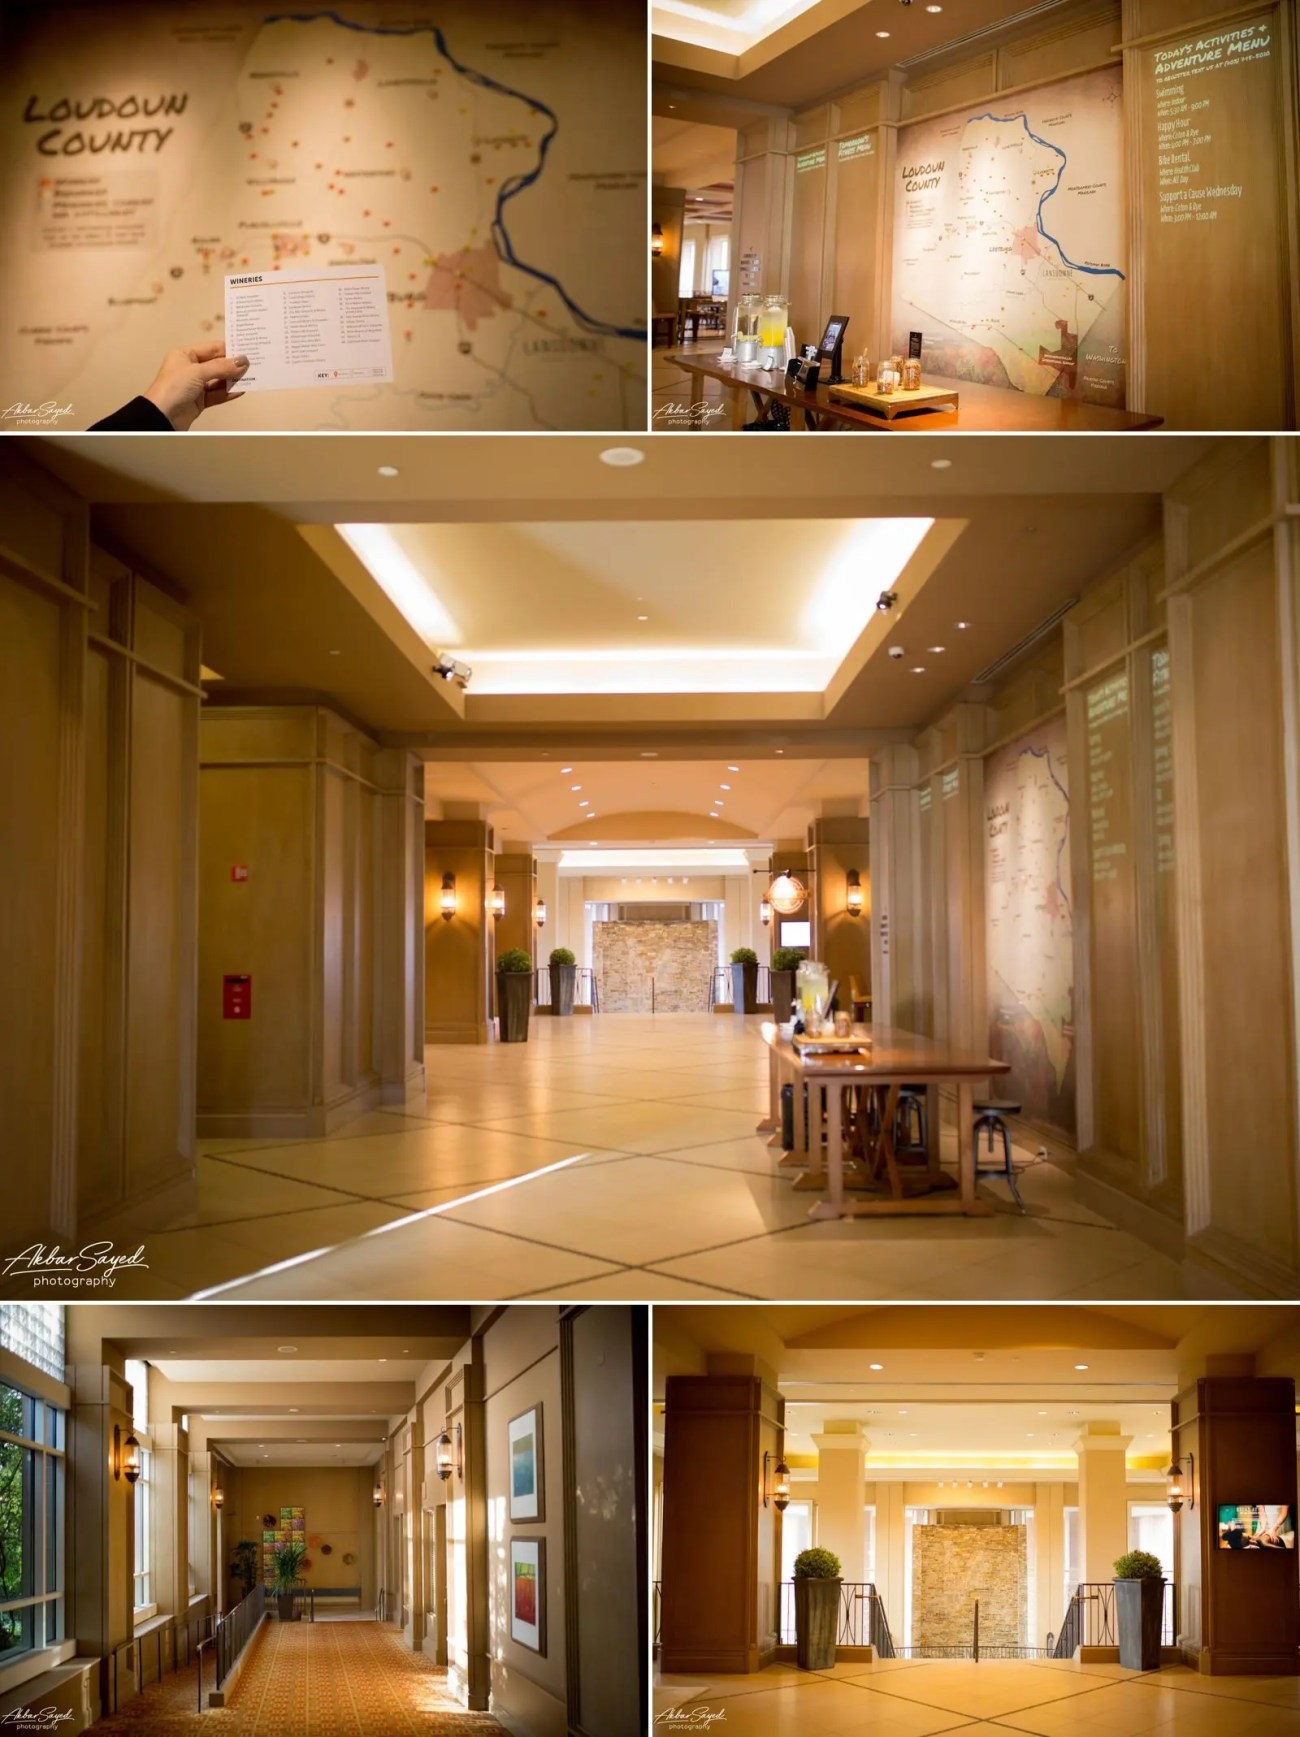 A collage of photographs showing the foyer and entrance area of Lansdowne Resort Wedding Venue in Leesburg, Virginia.